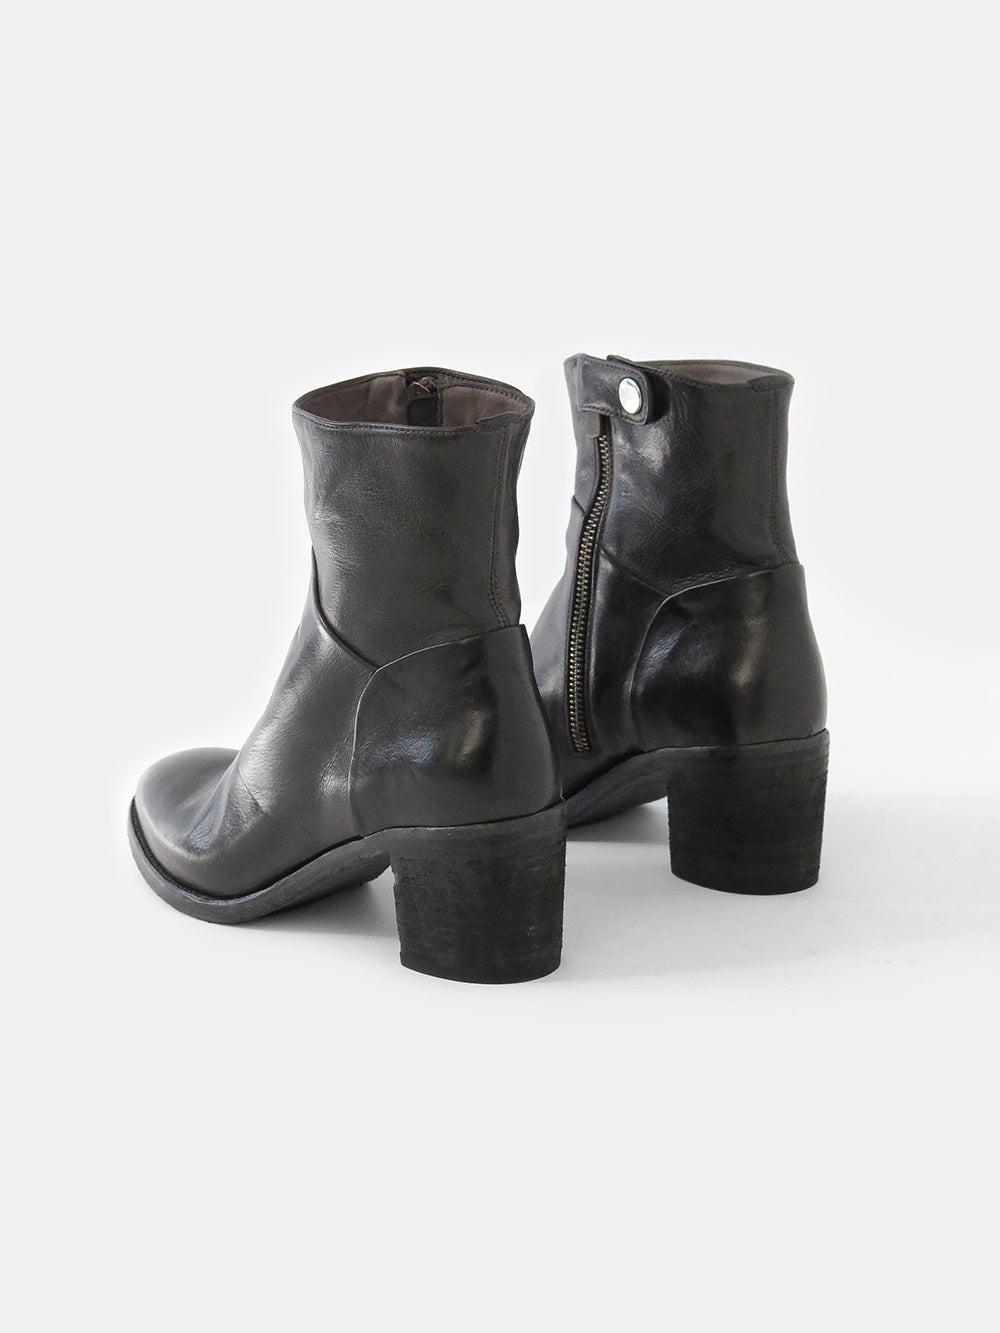 officine creative sarah boot in magnete